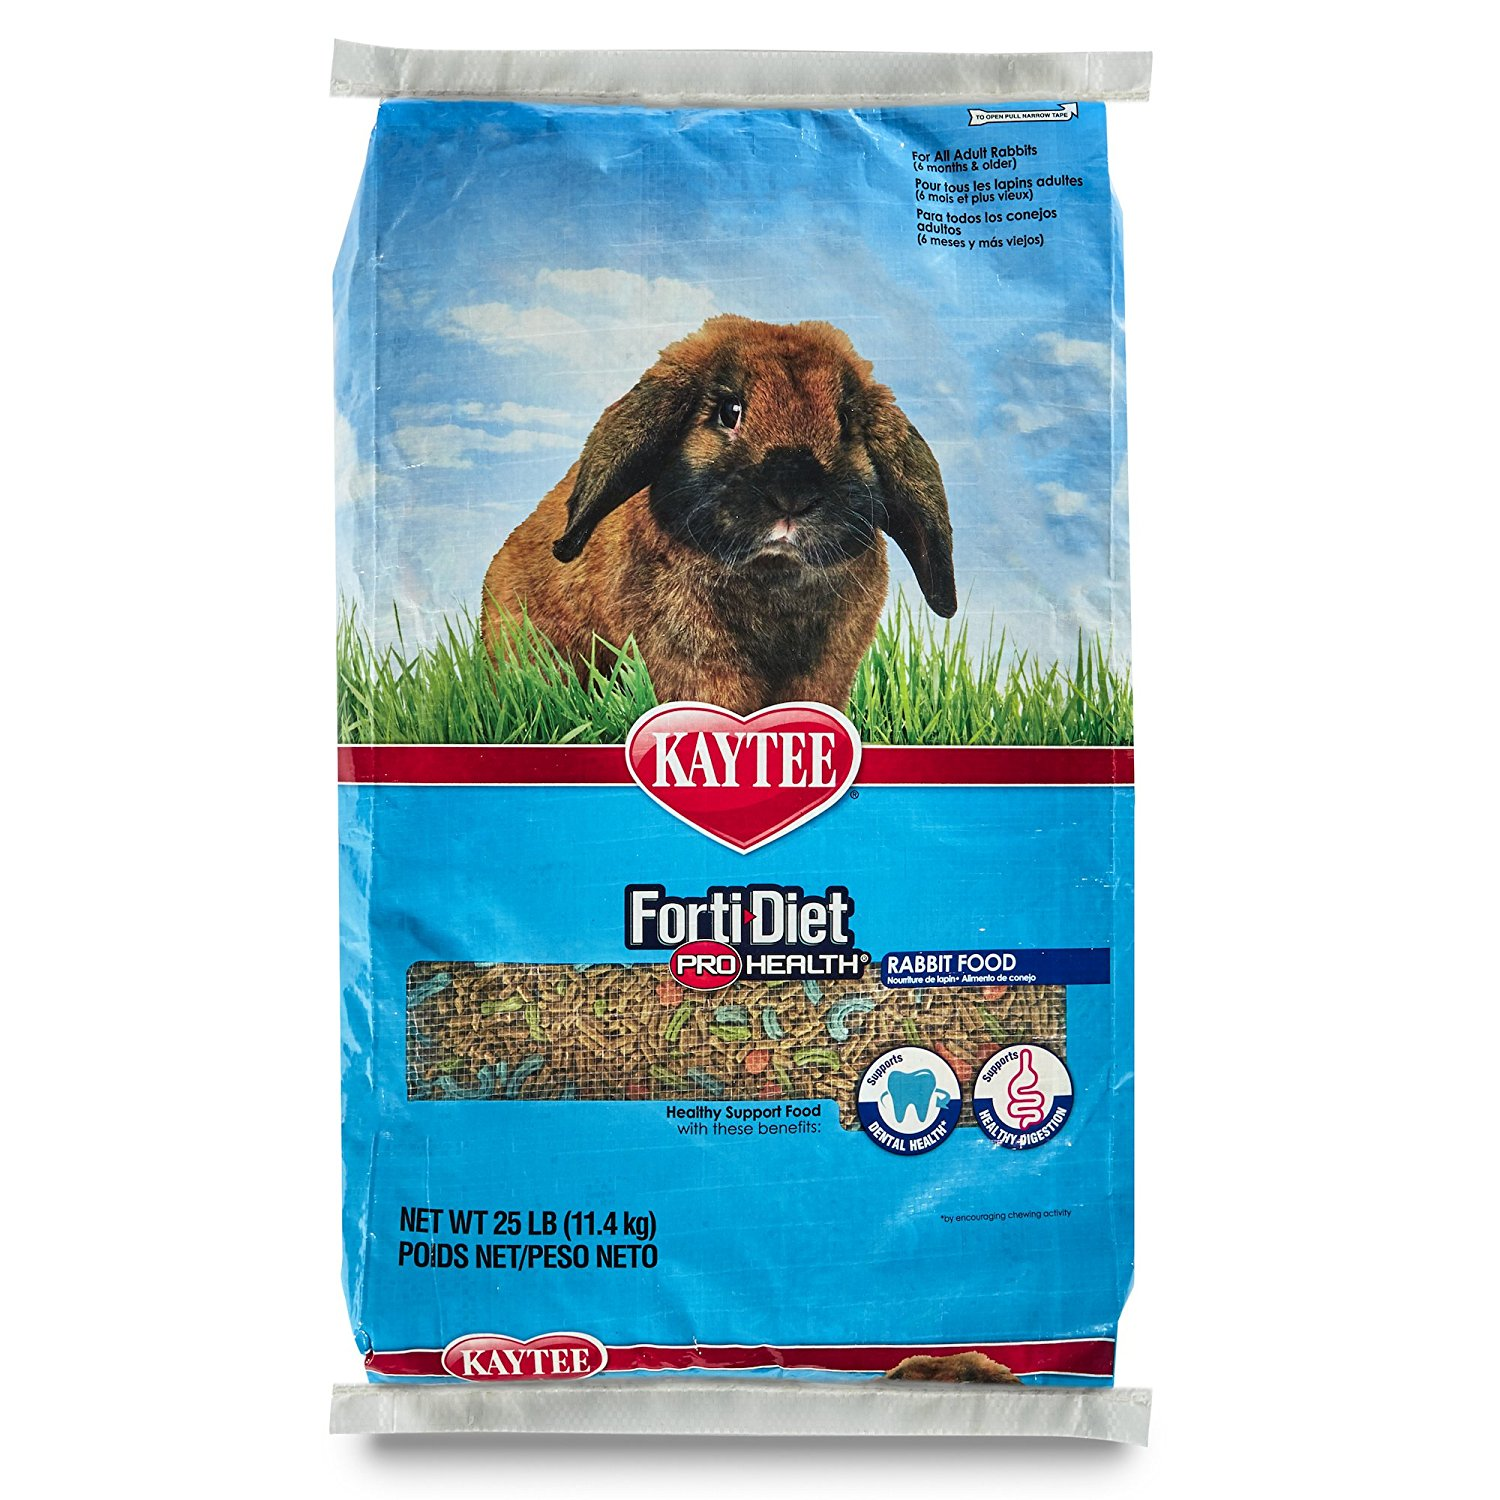 Forti Diet Pro Health Rabbit Food for Adult Rabbit, 25-Pound, Larger, crunchy pieces support dental health... by